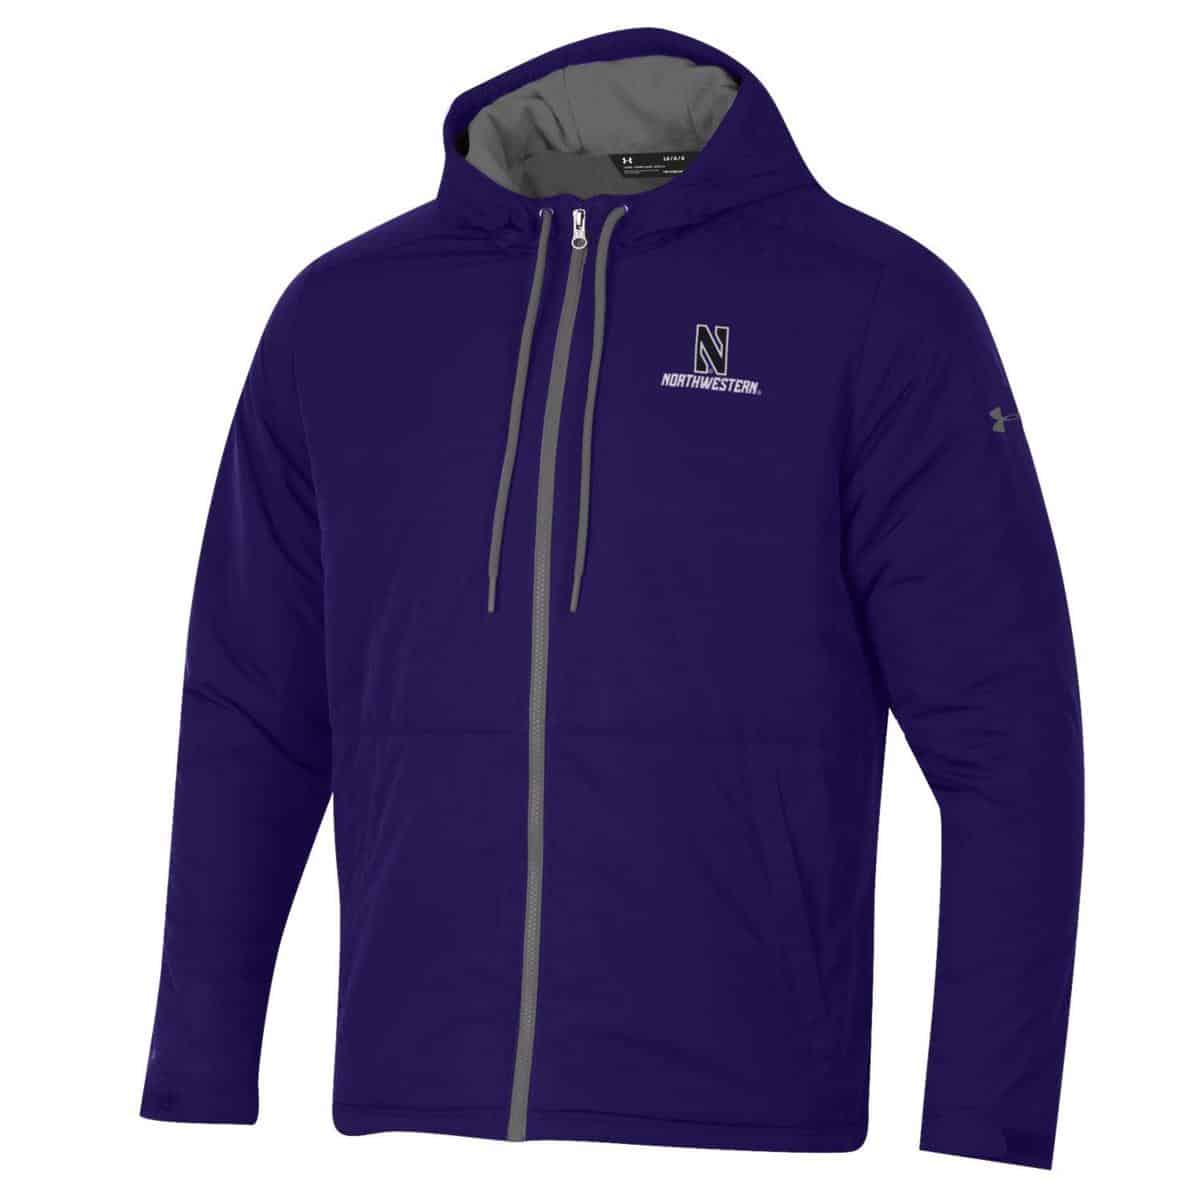 more photos 5c94b 9a7a6 Northwestern University Wildcats Men s Under Armour Purple Coldgear Fleece  -Lined Puffer Fullzip Hooded Jacket